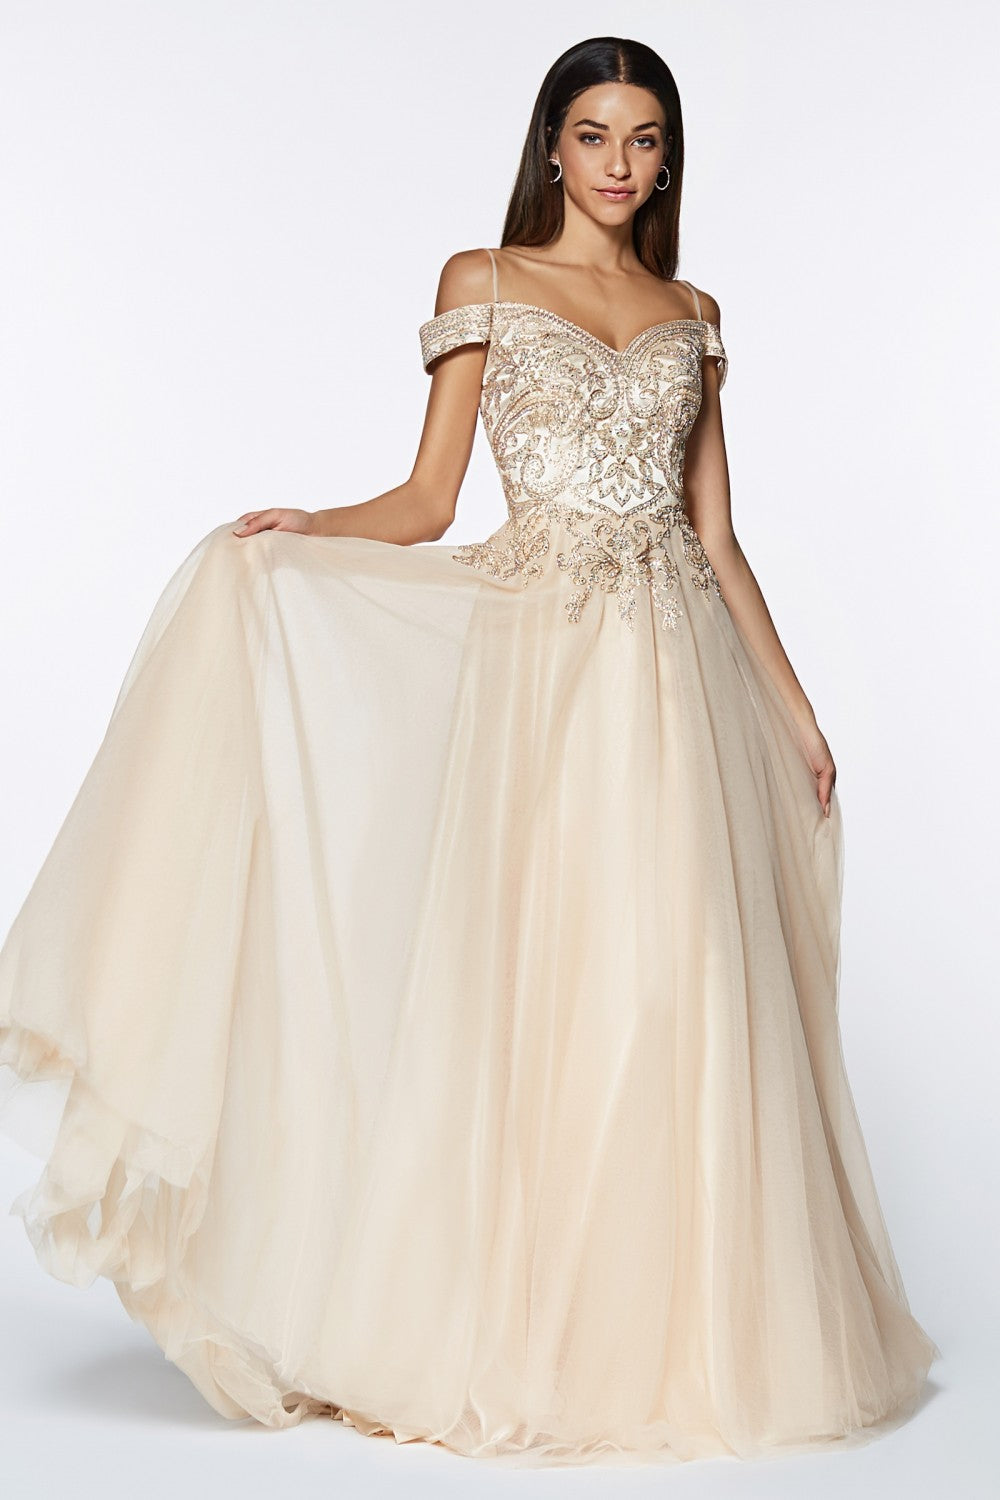 A-Line Tulle Gown With Off The Shoulder Beaded Bodice